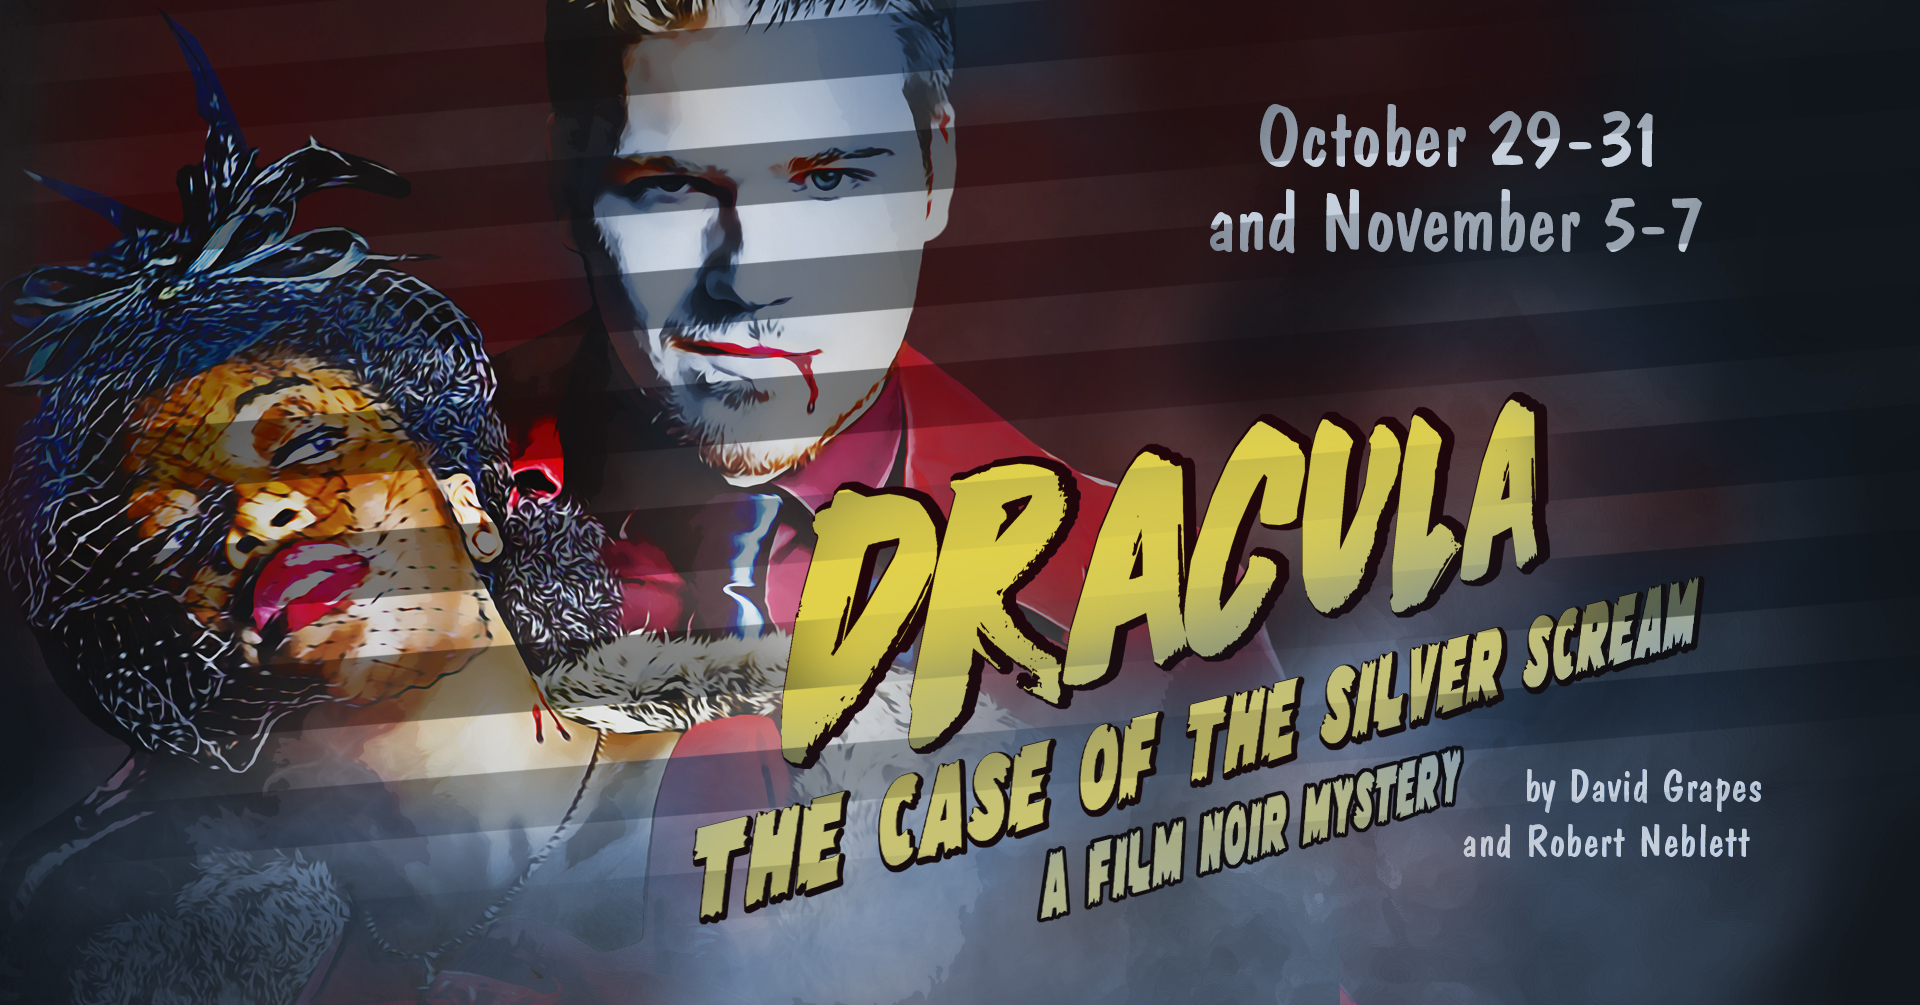 GCSC Visual and Performing Arts Presents Dracula: The Case of The Silver Scream, A Film Noir Mystery